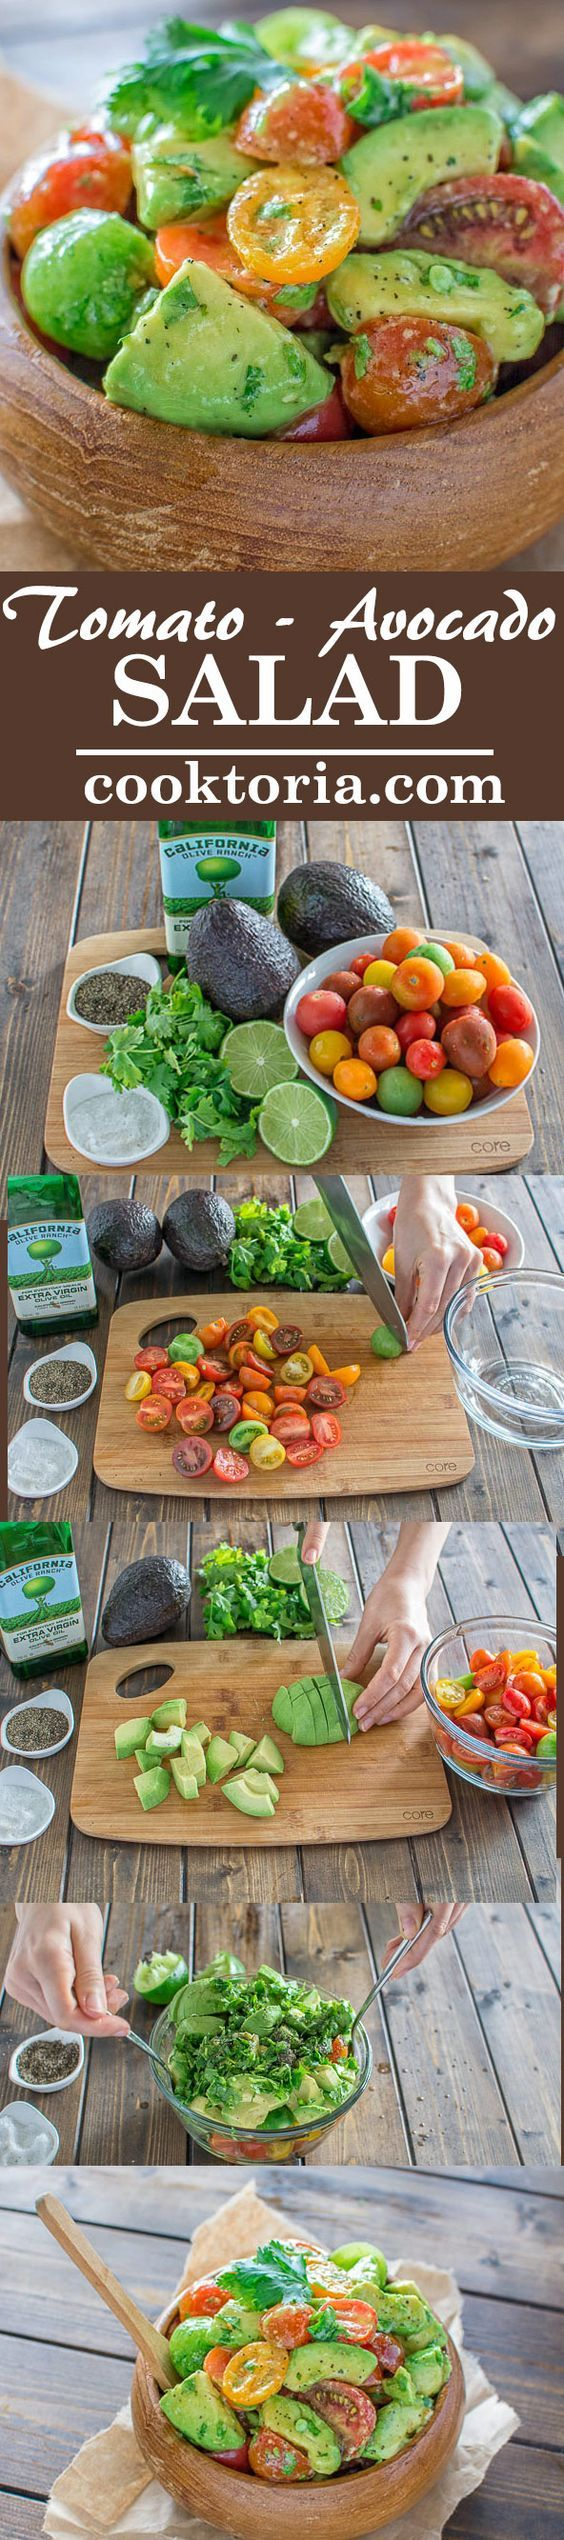 Tomato Avocado Salad | Recipe